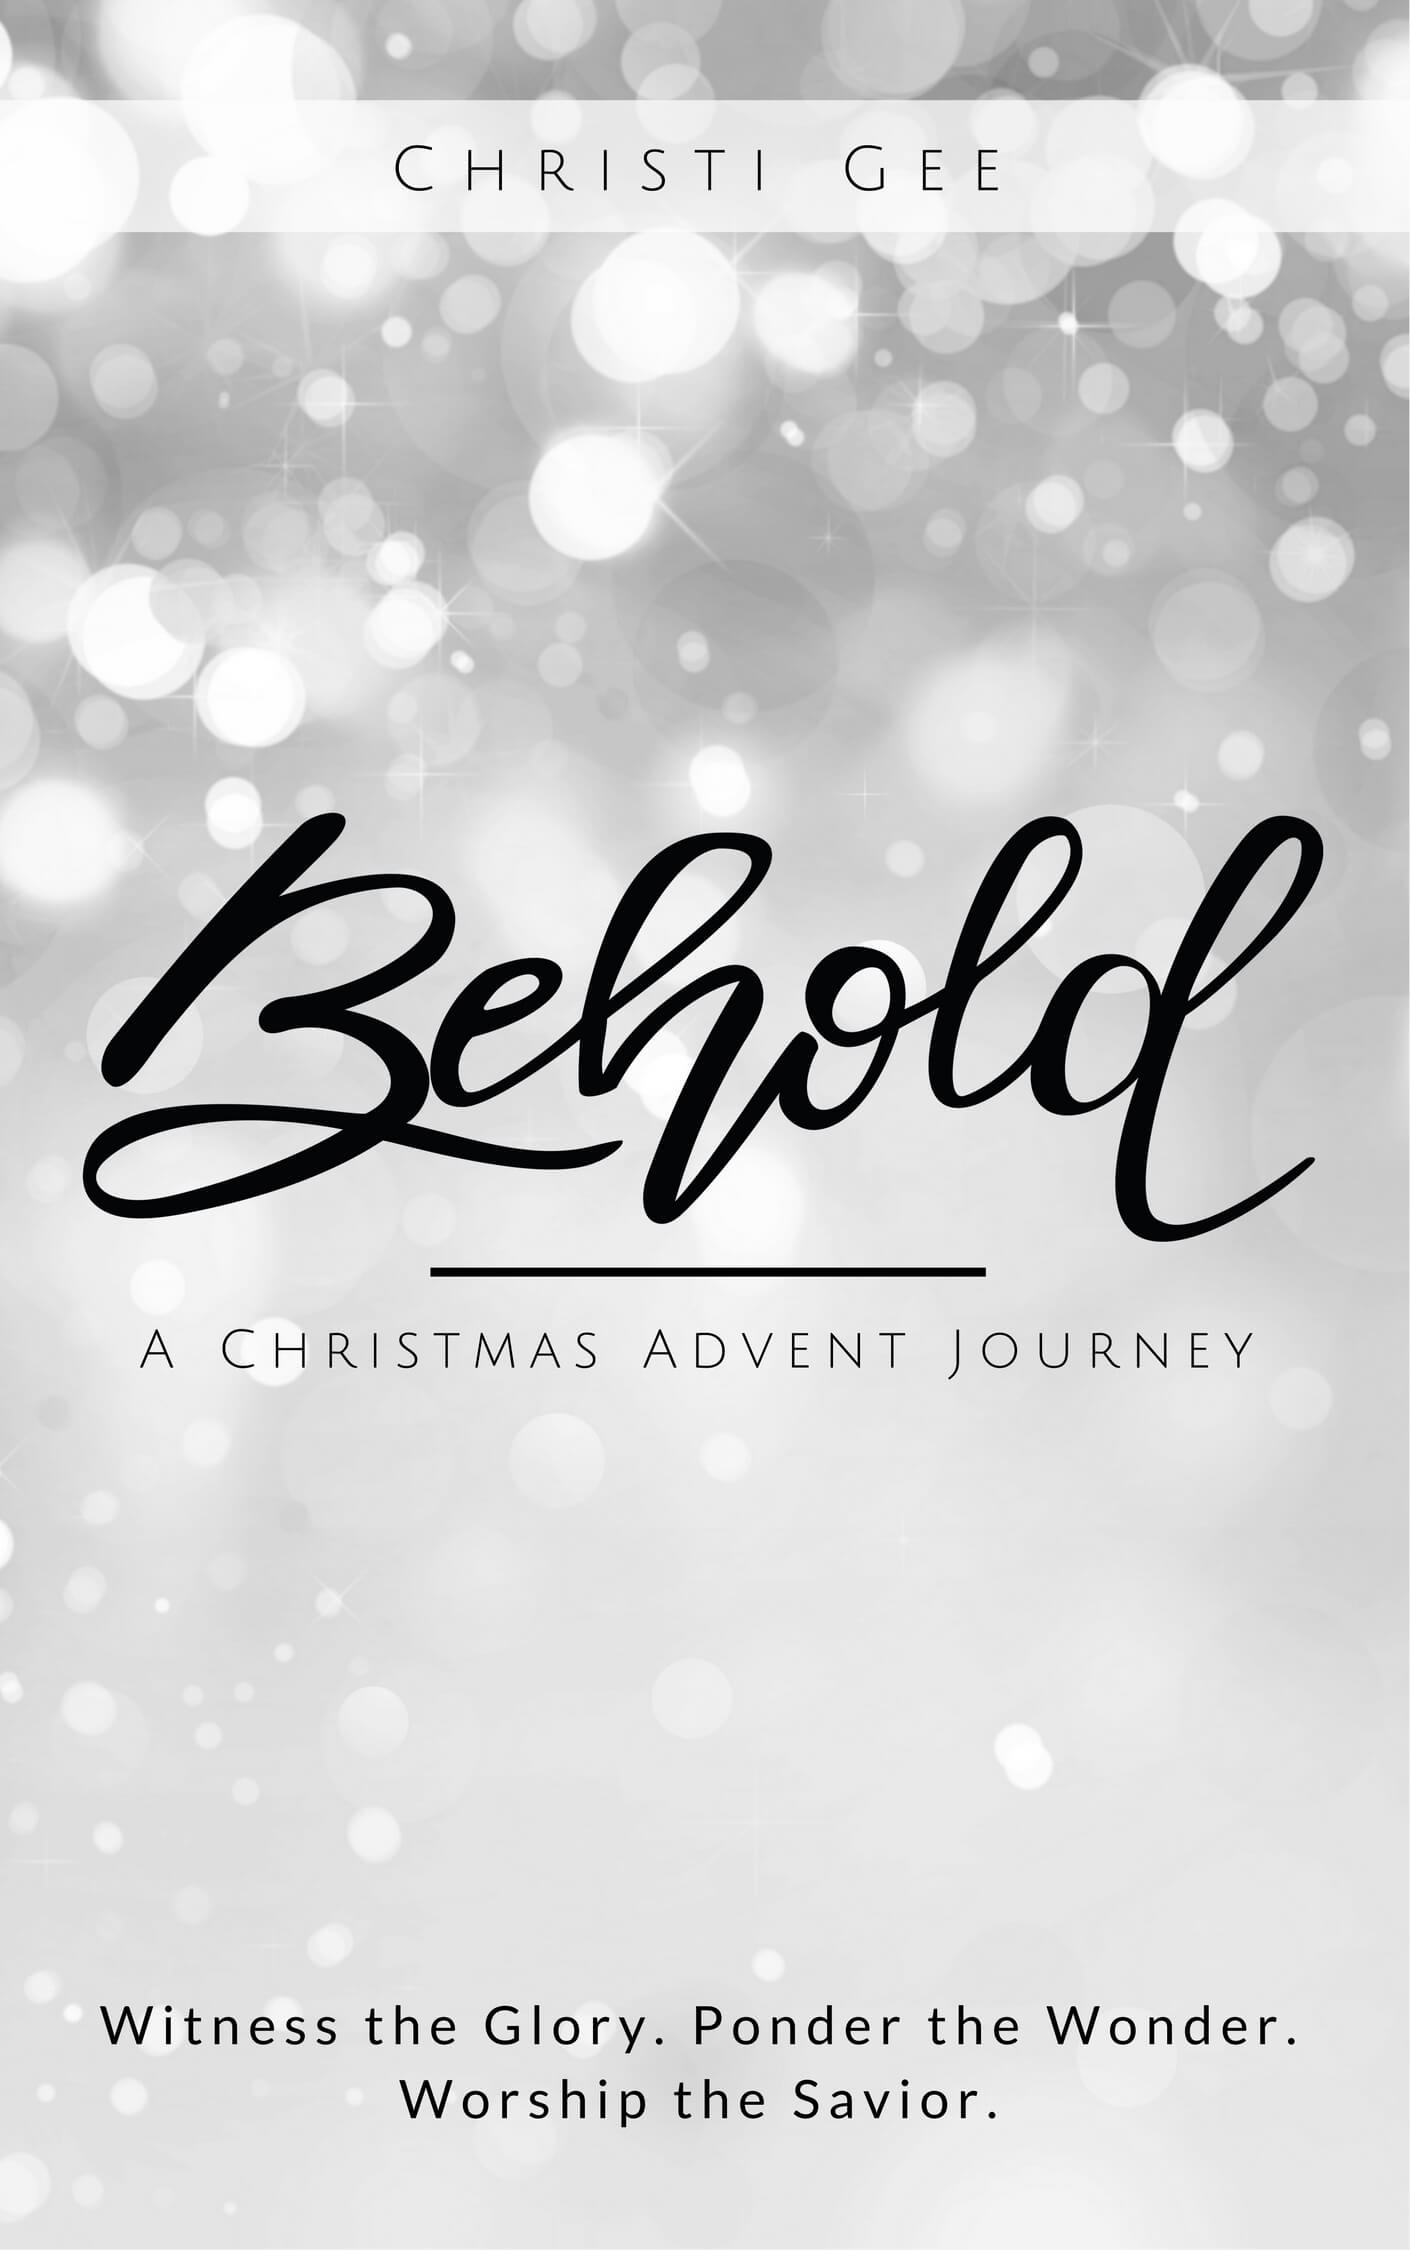 Behold Advent Book By Christie Gee